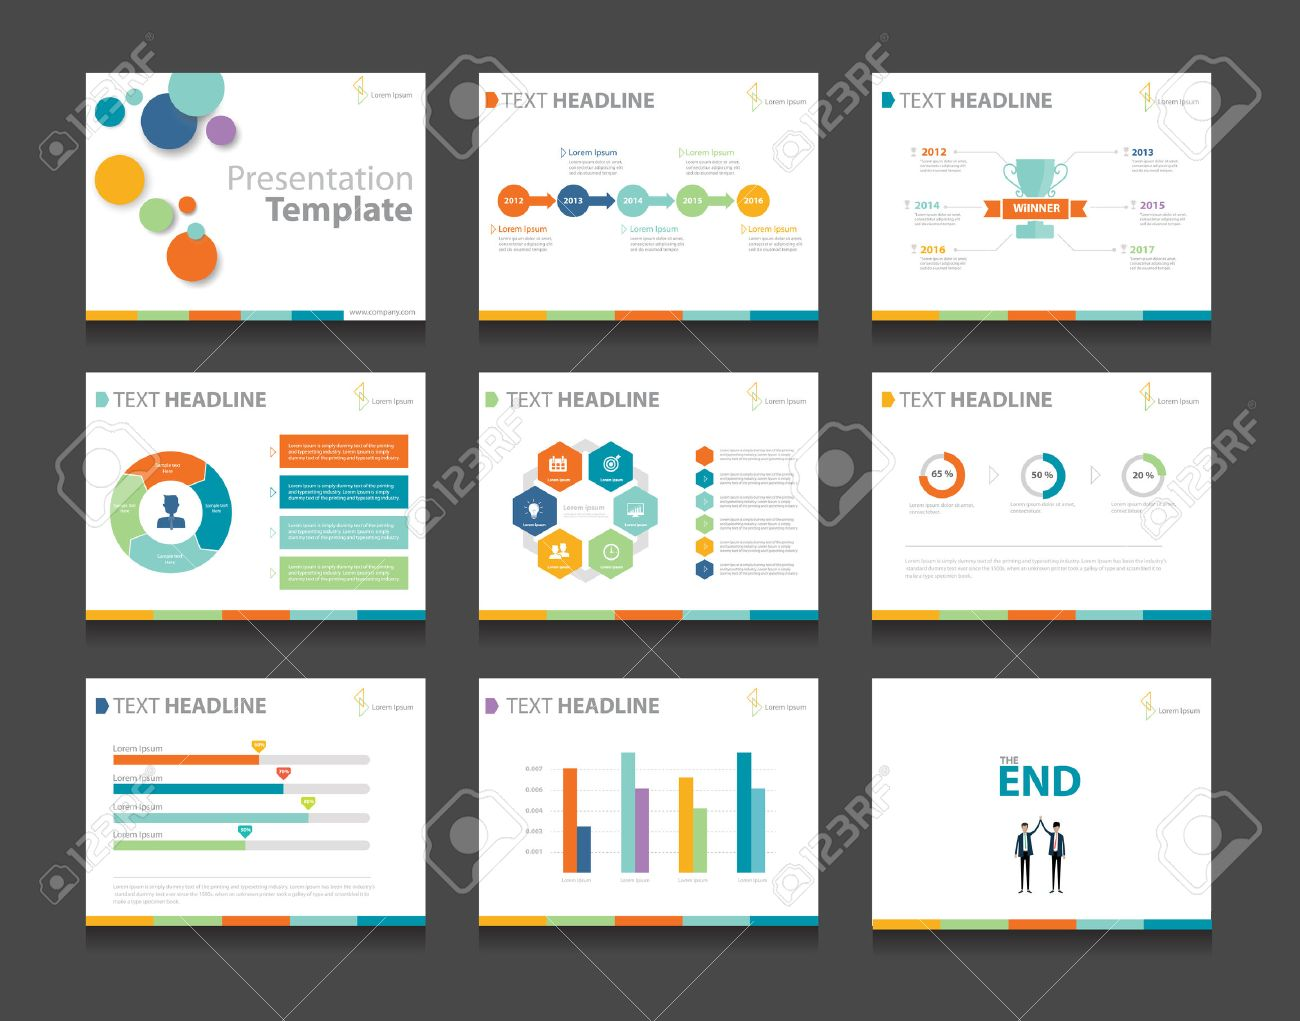 Powerpoint business presentation selowithjo colorful infographic business presentation template set powerpoint fbccfo Image collections